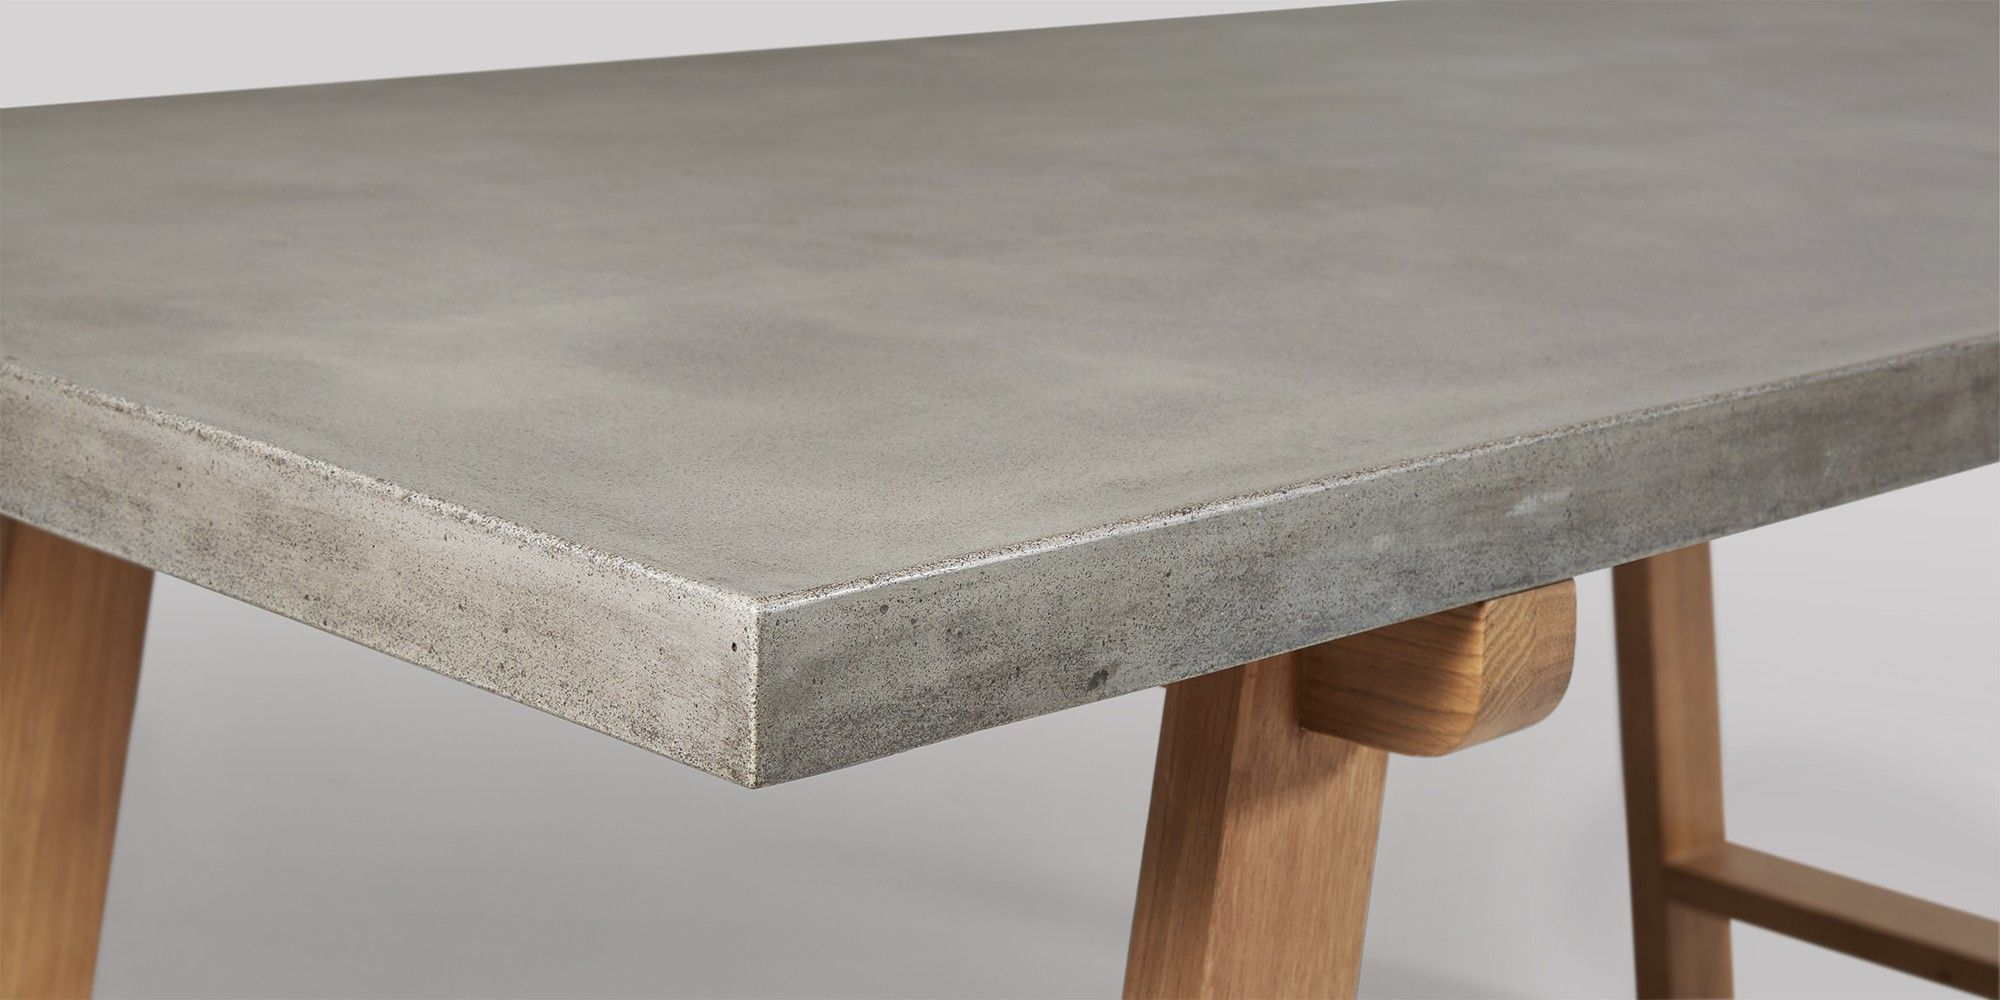 Amherst Dining Table Swoon Editions Industrial Style Dining